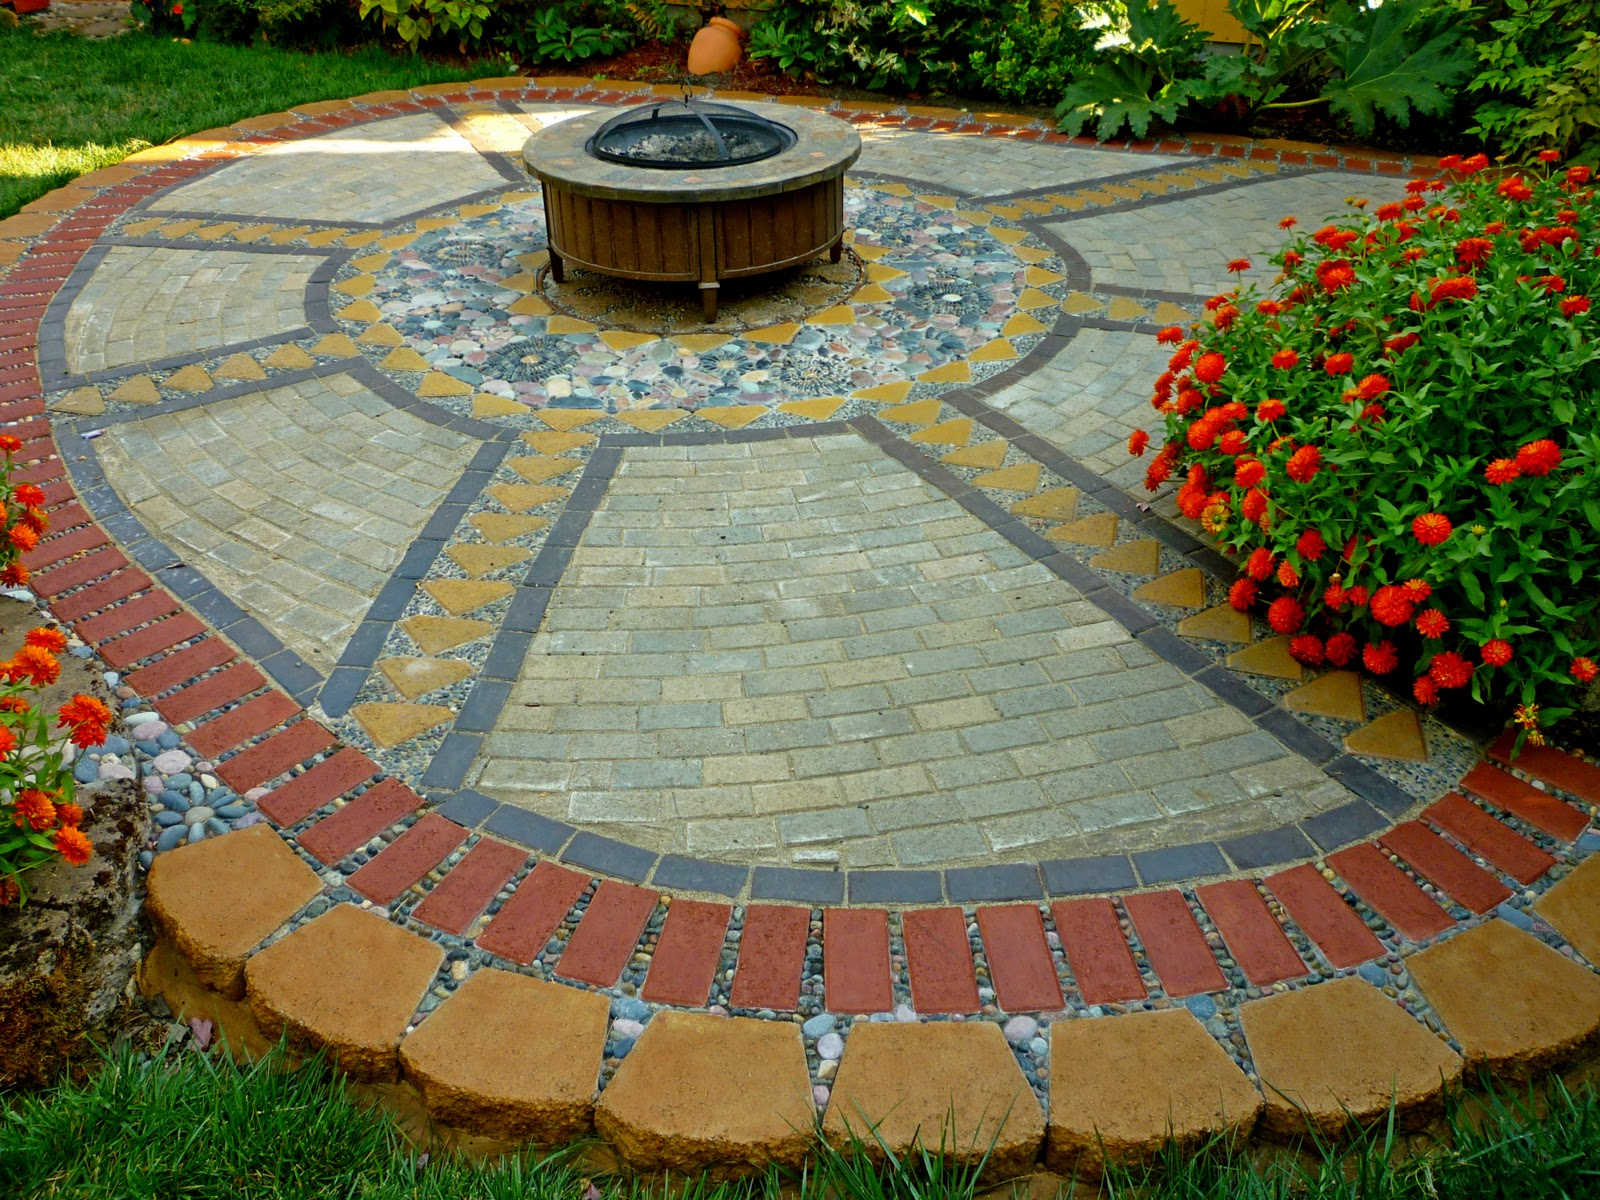 Making Paver And Pebble Mosaic Patio on lowes landscape patio pavers